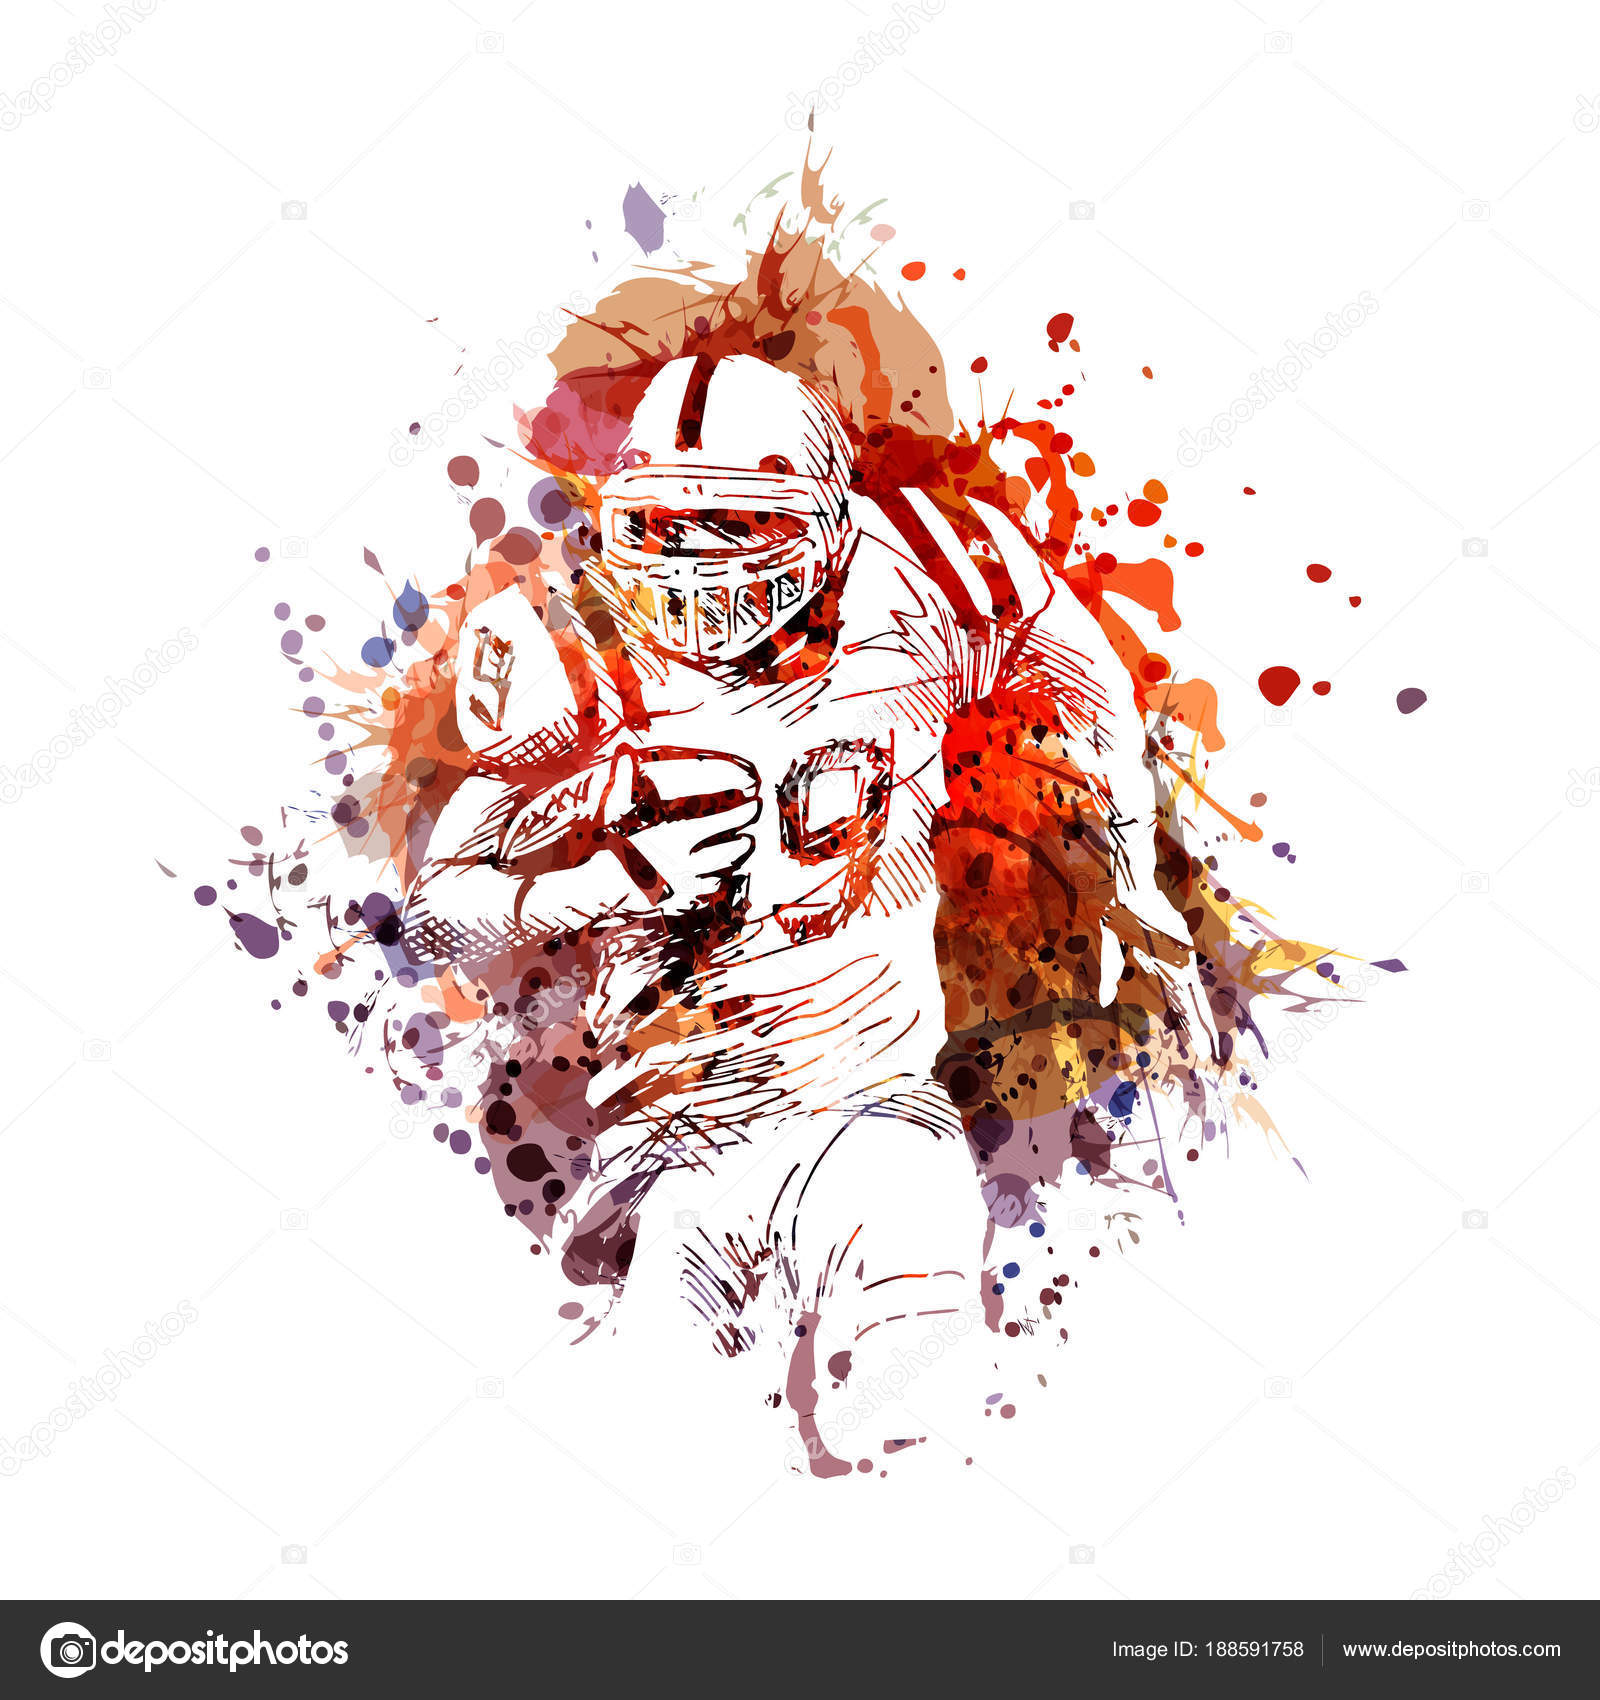 Farbigen illustration des american football spieler vektor illustration vektor von